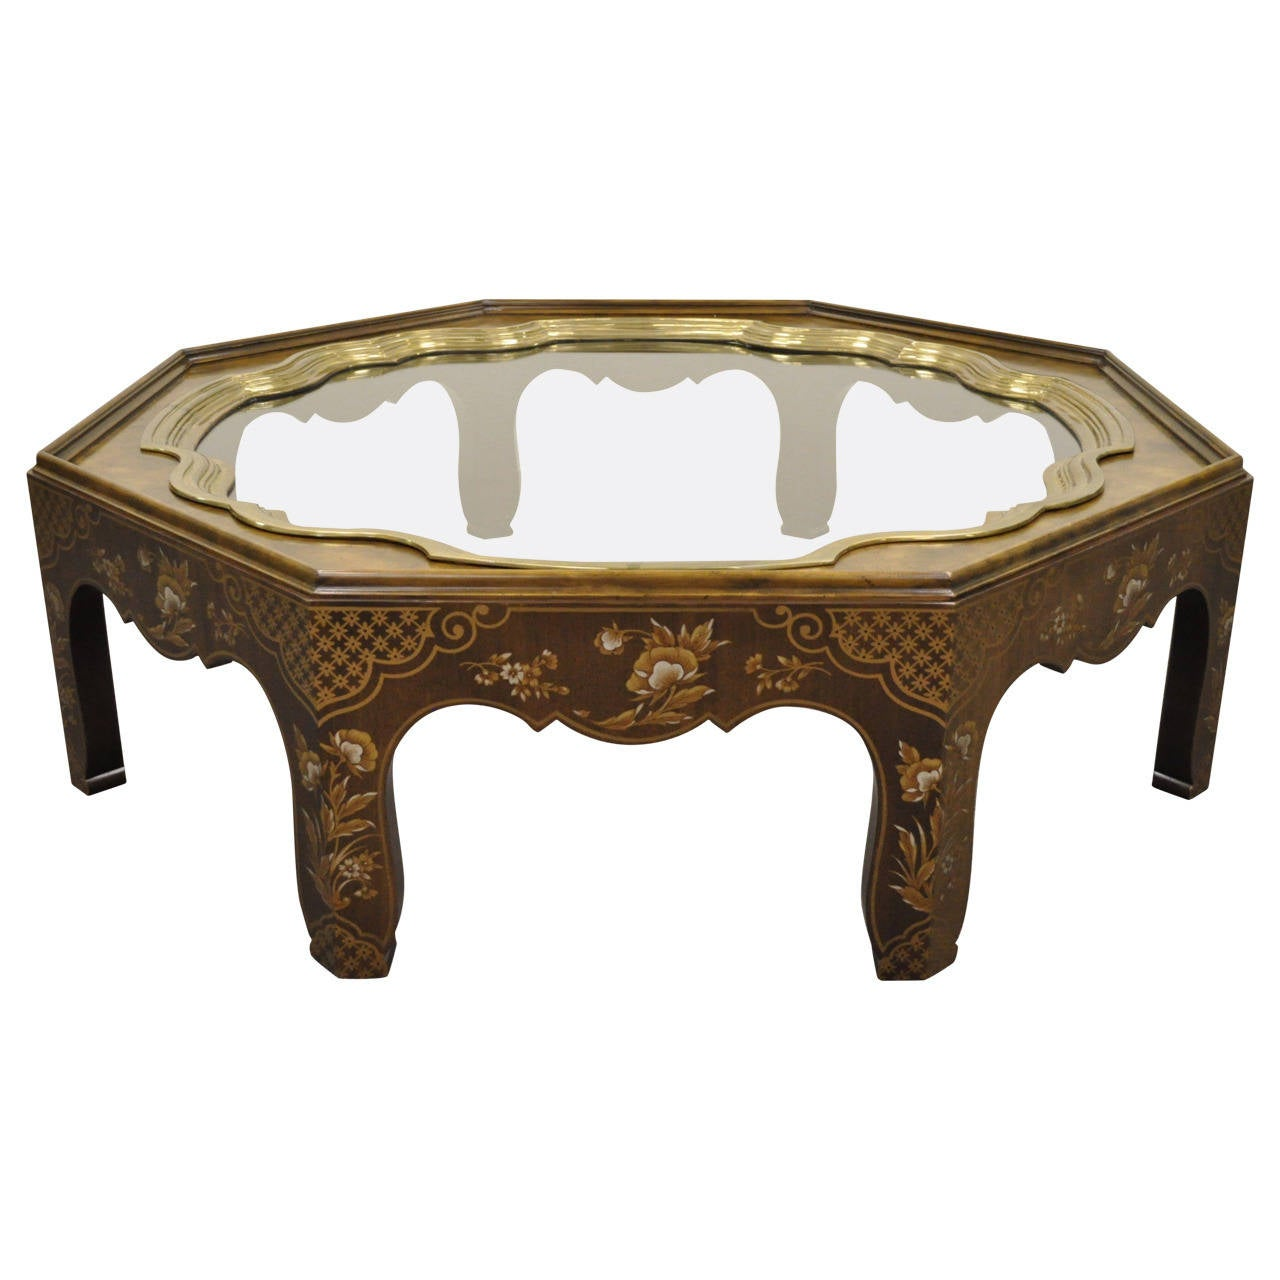 Co Chinoiserie Painted Brass Tray Coffee Table For Sale At 1stdibs